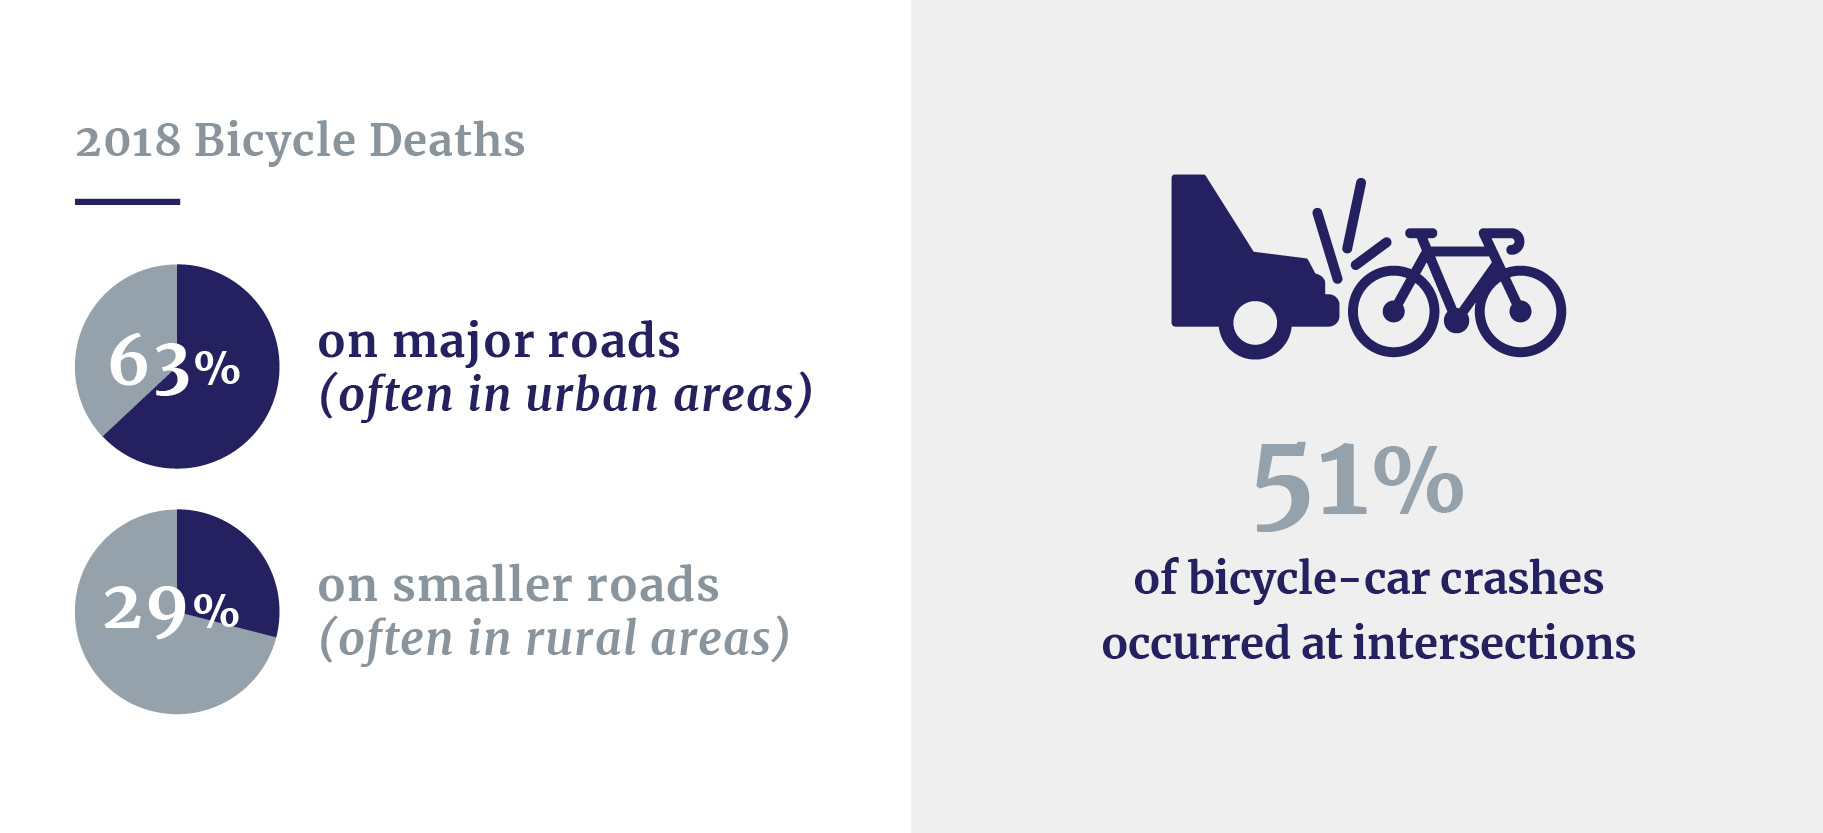 Locations of bicycle fatalities